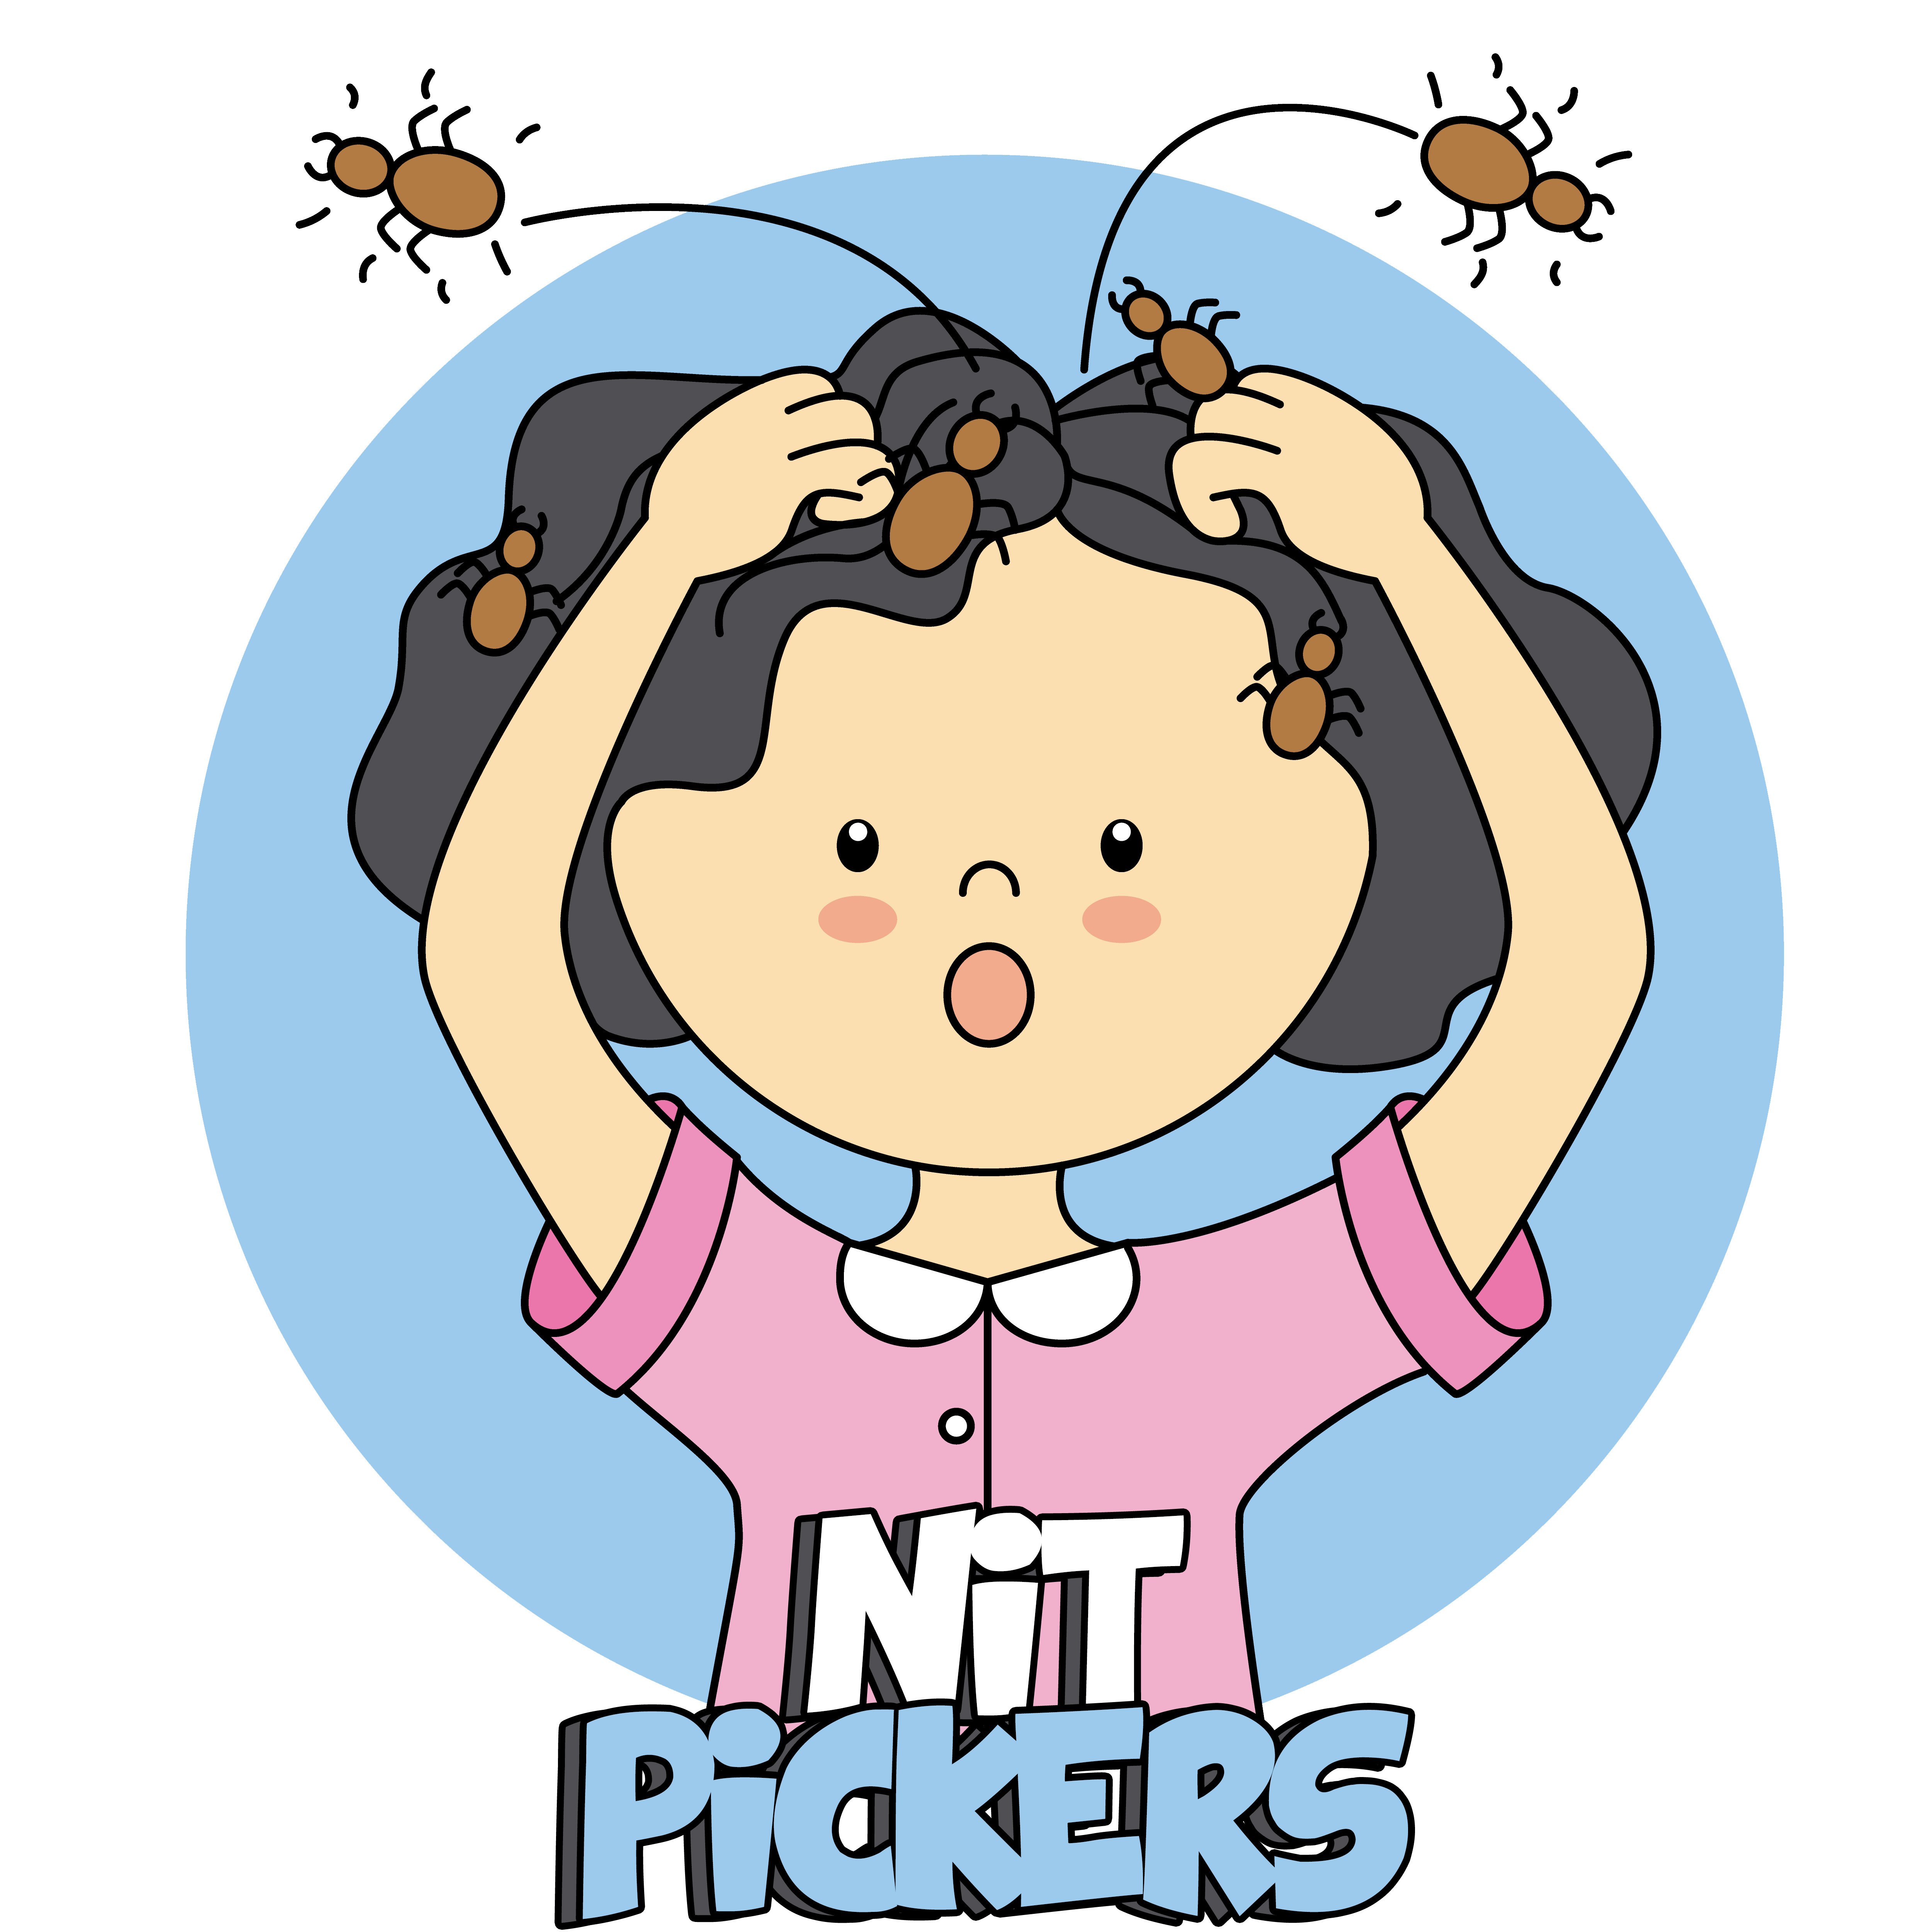 Facts of lice nit. Nervous clipart student